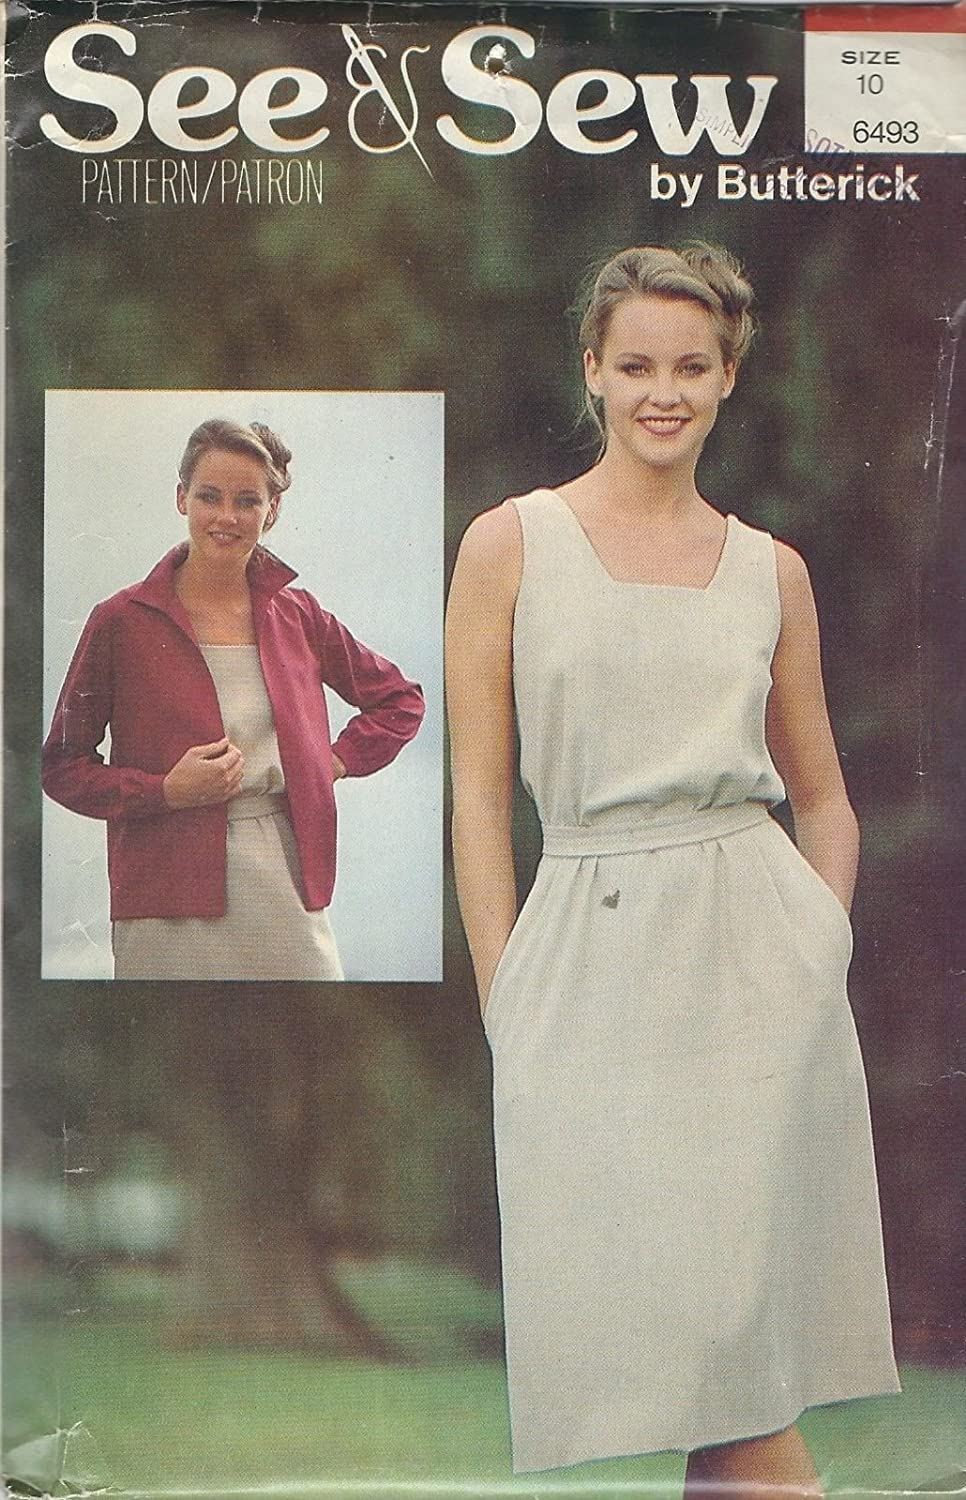 See & Sew 6493 Misses' Jacket, Dress and Belt Size 10 Sewing Pattern supplier:sailorsparadise